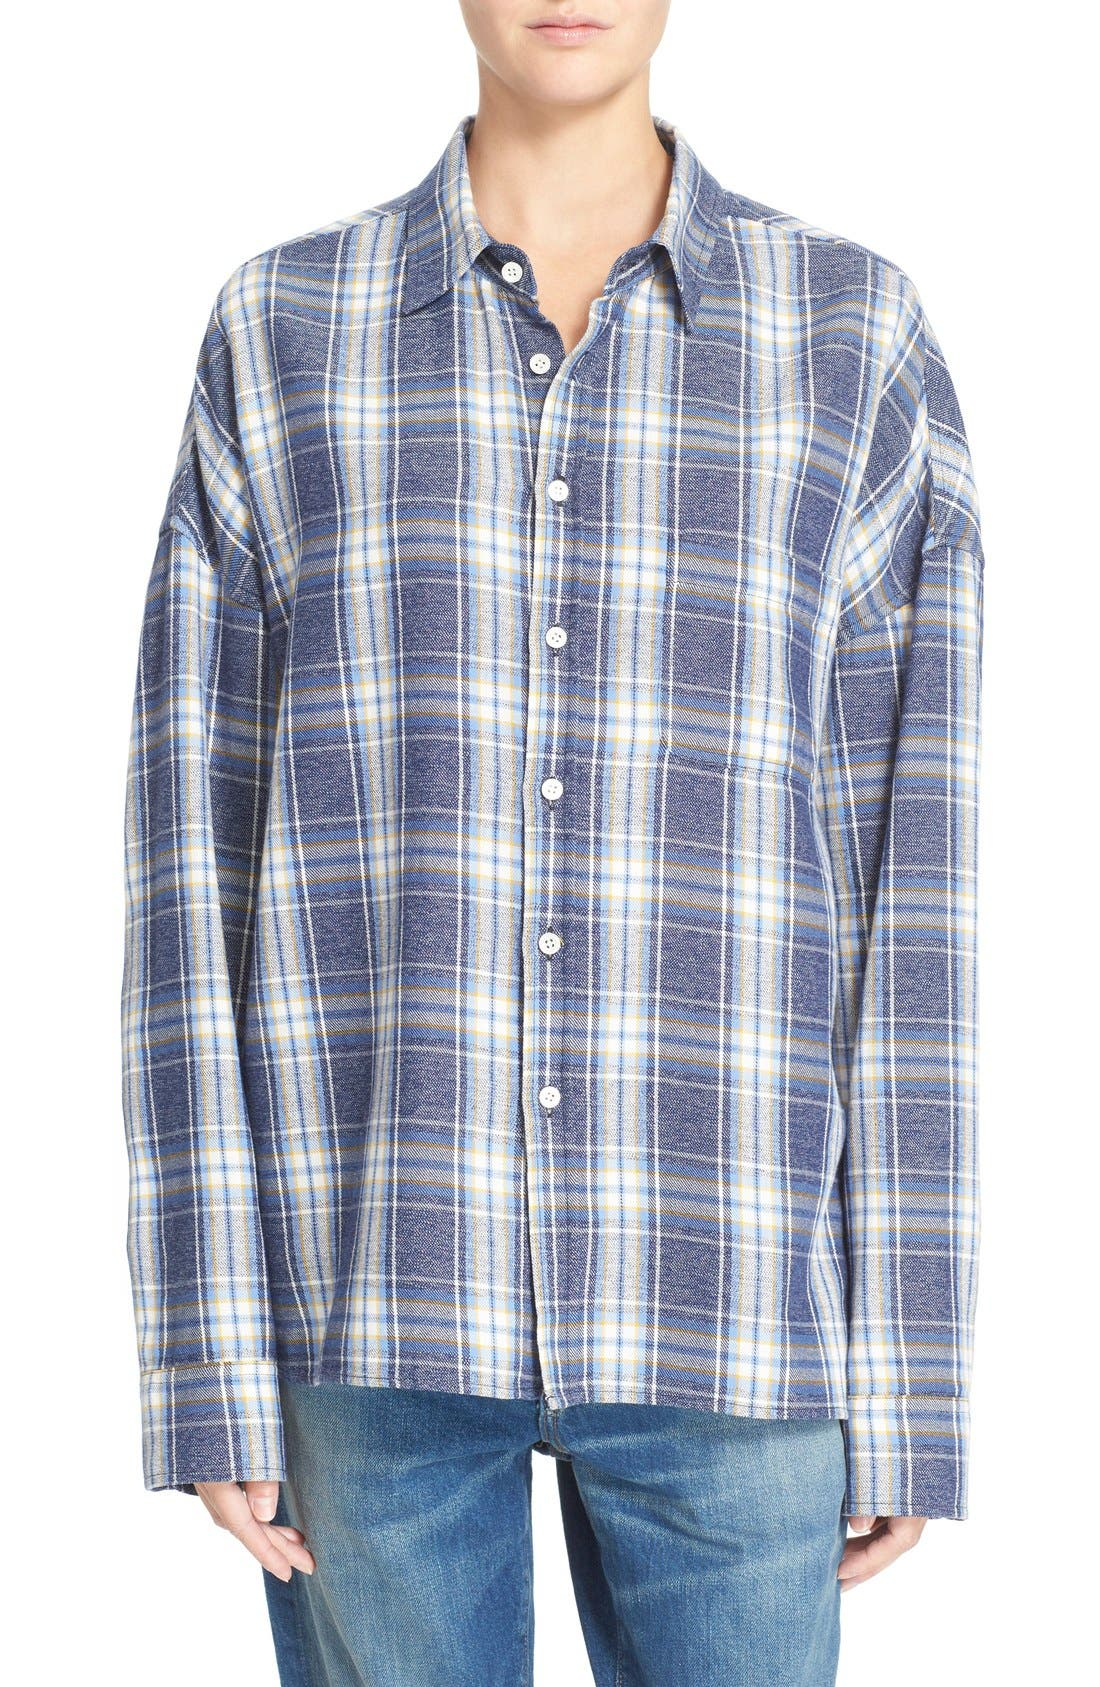 Alternate Image 1 Selected - 6397 'Lori' Cotton Flannel Shirt